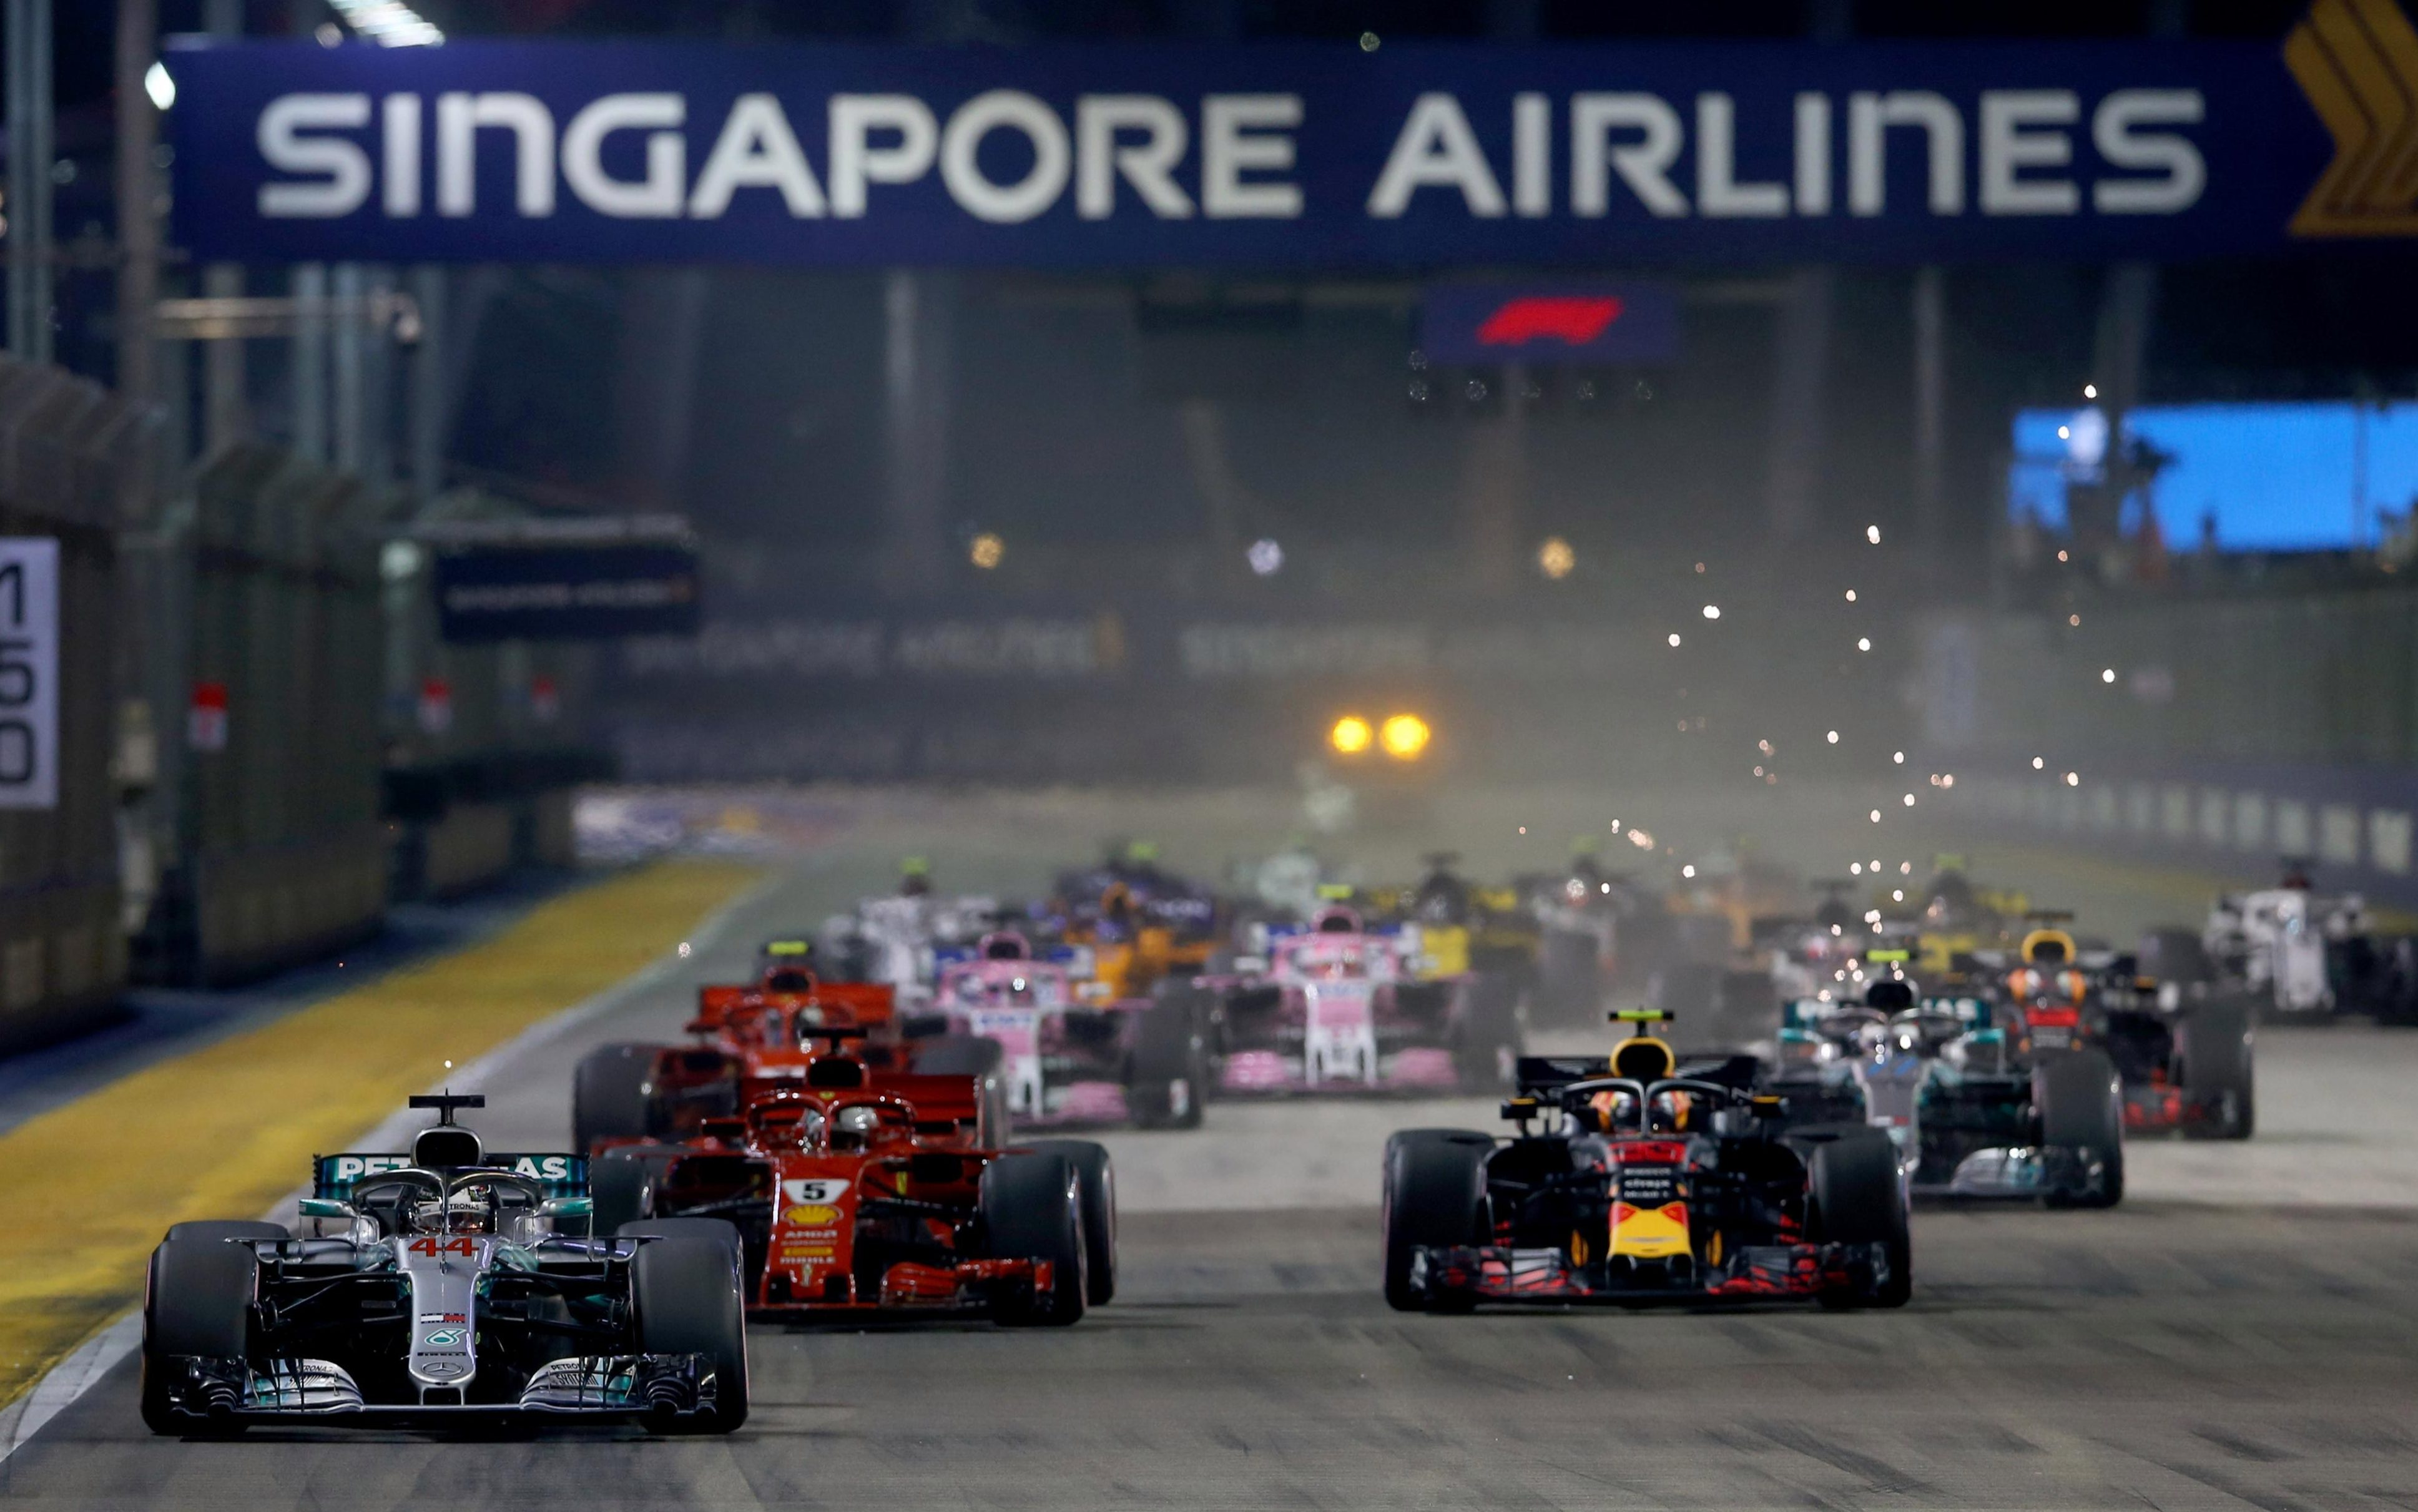 Only Singapore and Malaysia have hosted F1 events before Vietnam